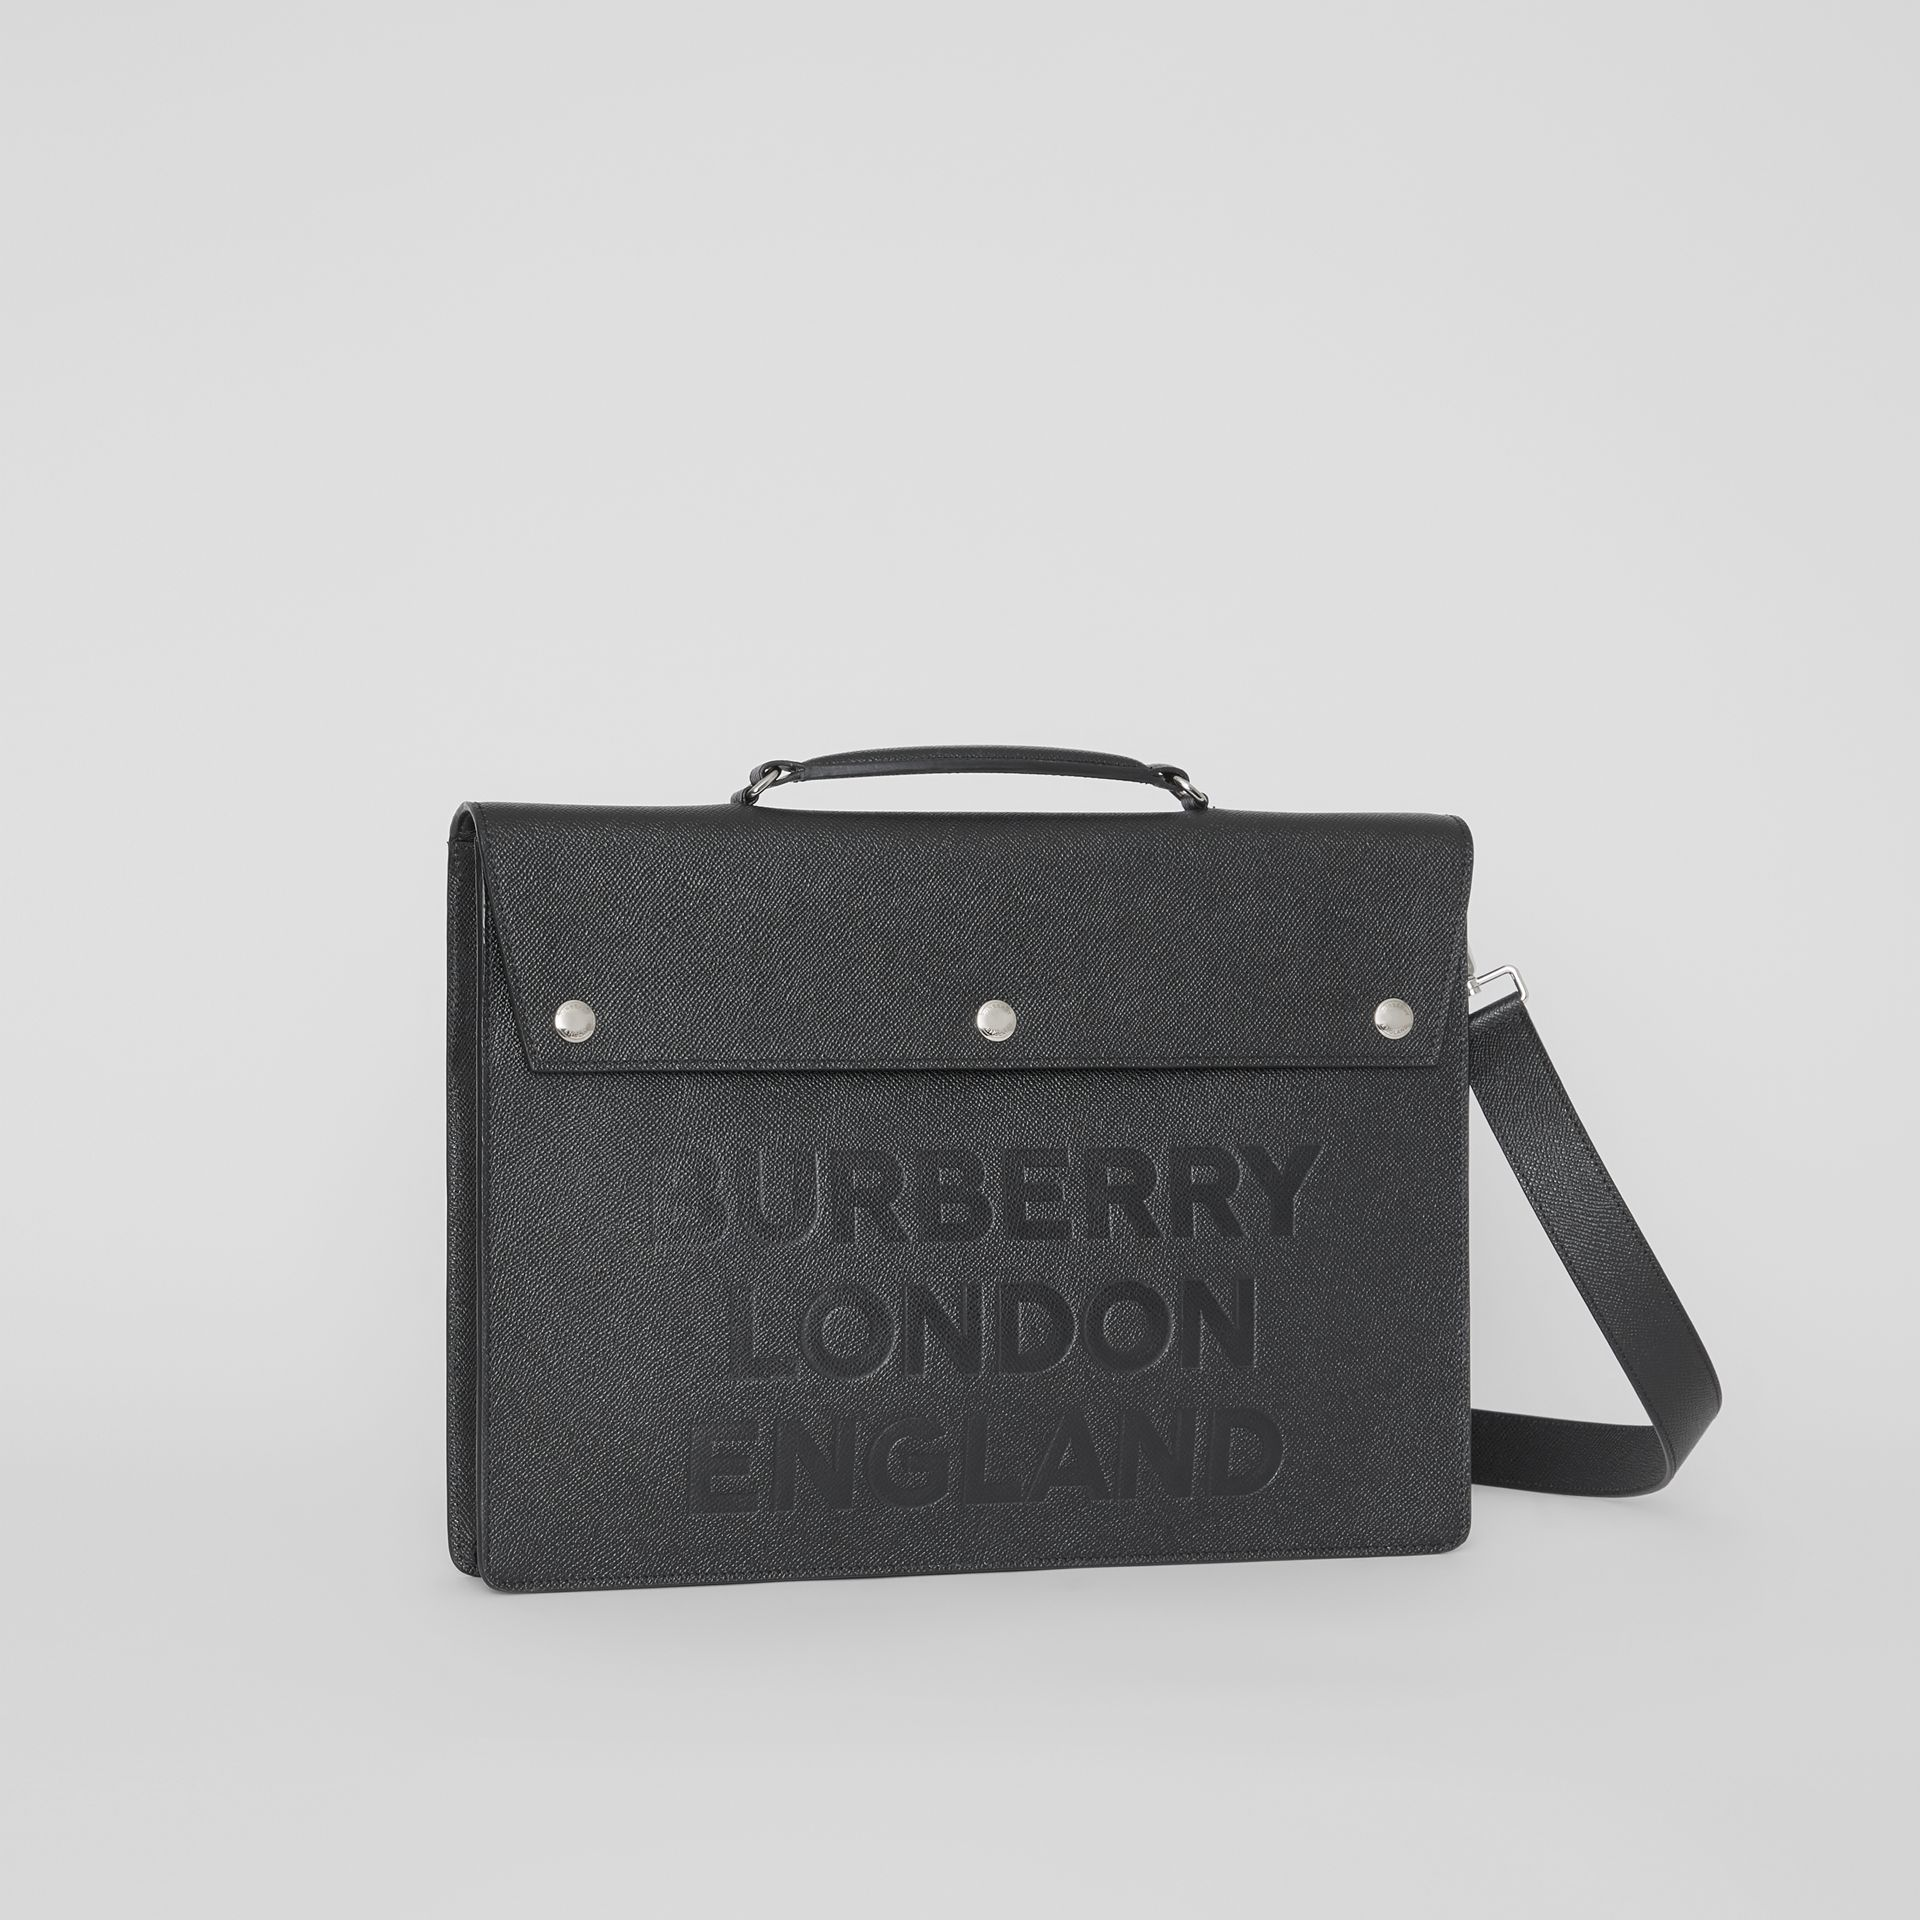 Porte-documents en cuir à triple pression avec logo (Noir) | Burberry - photo de la galerie 6